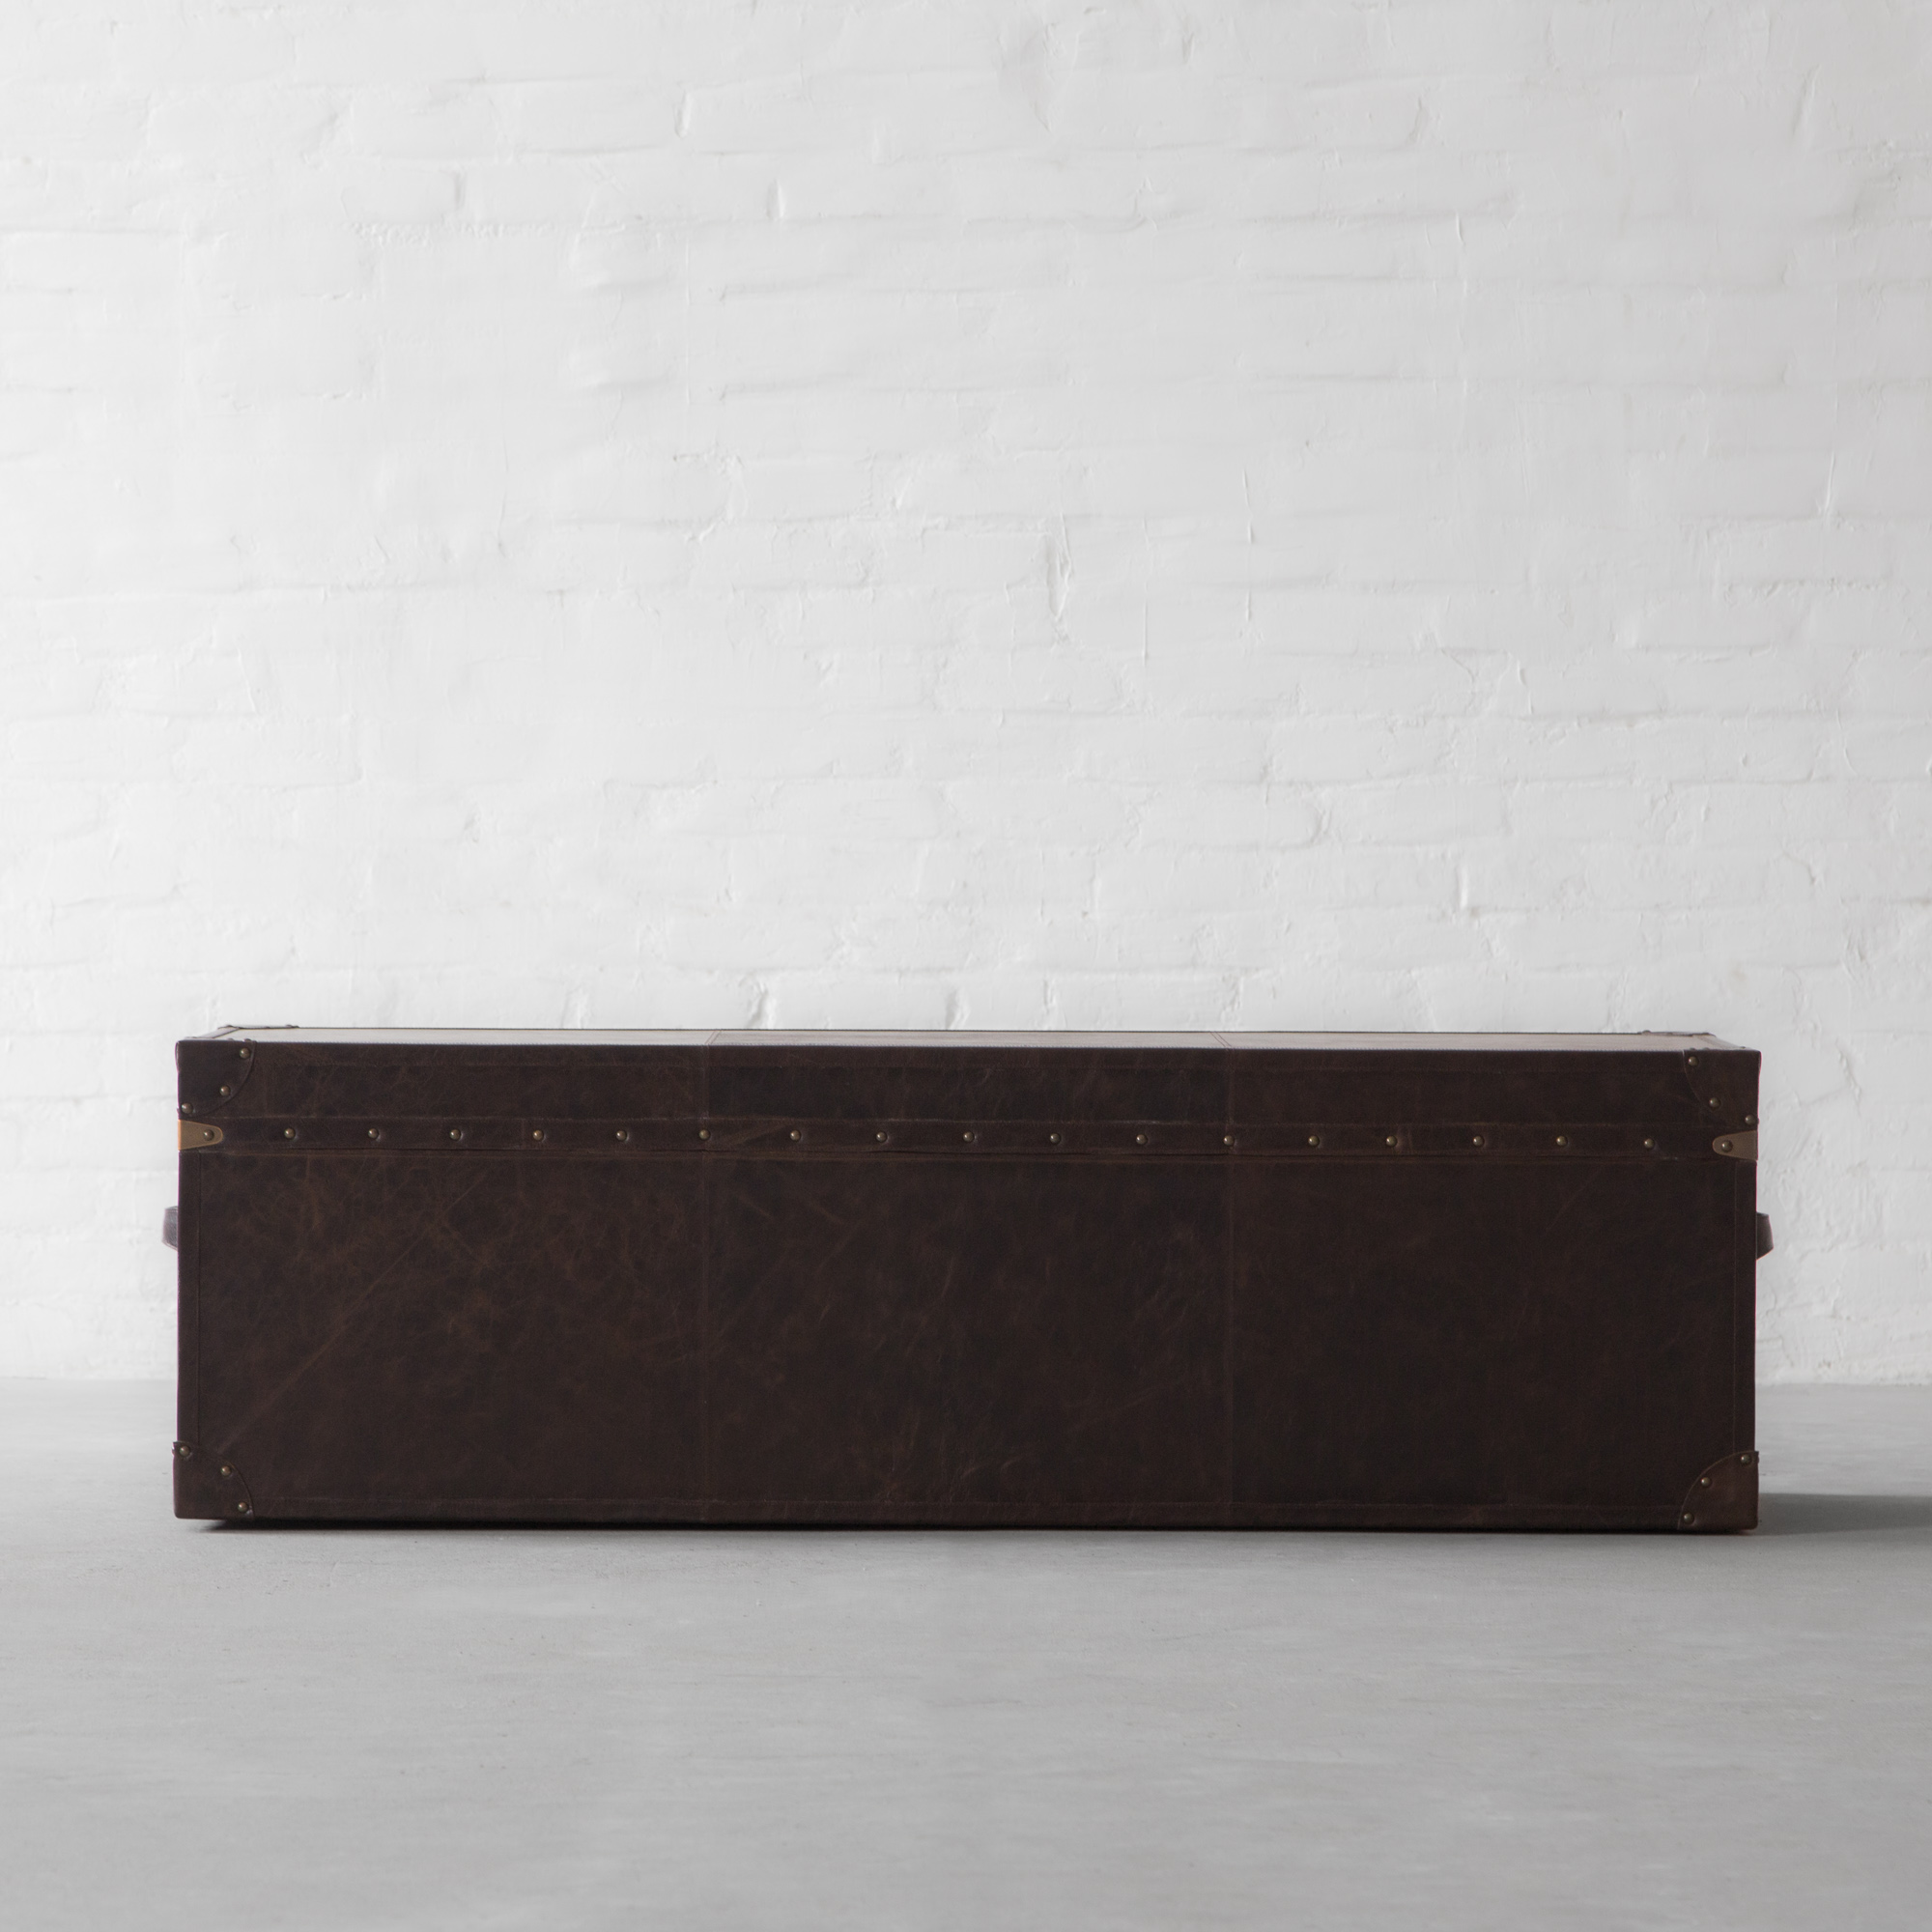 Udaipur Leather Trunk Bench